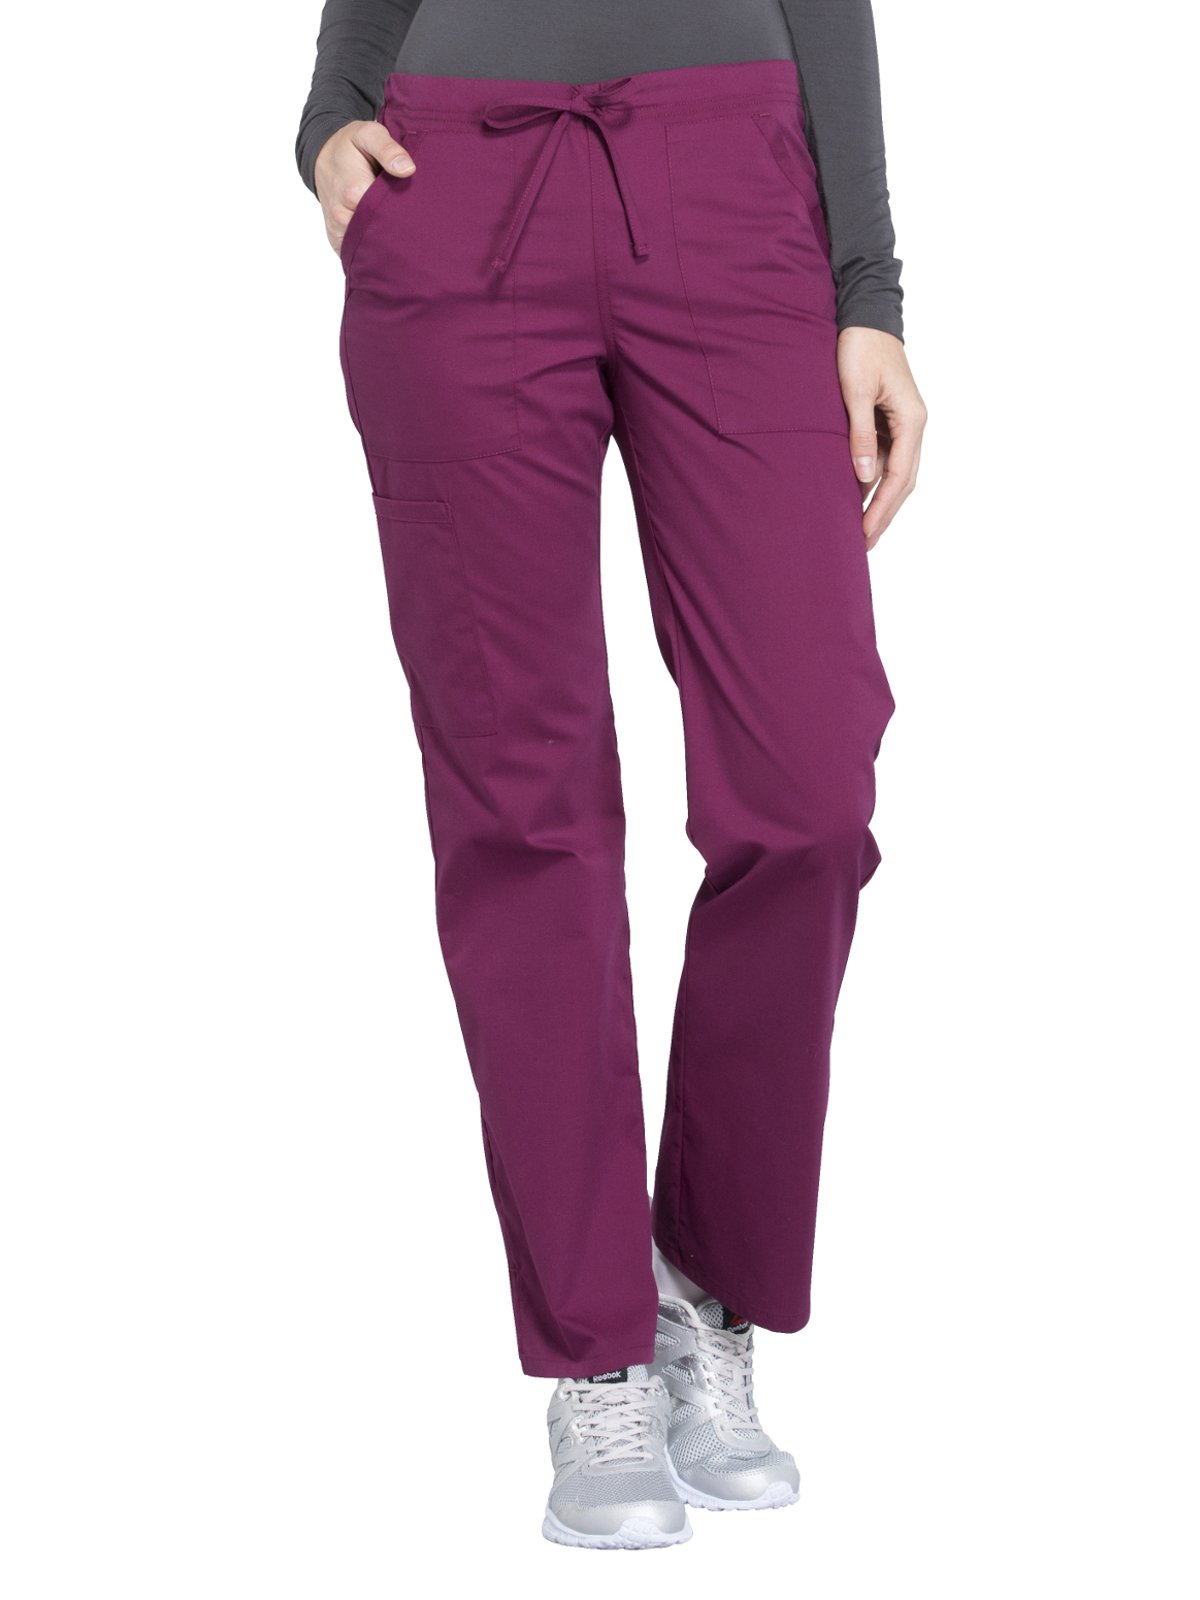 Cherokee Workwear Professionals WW160 Straight Leg Pant- Wine- Small